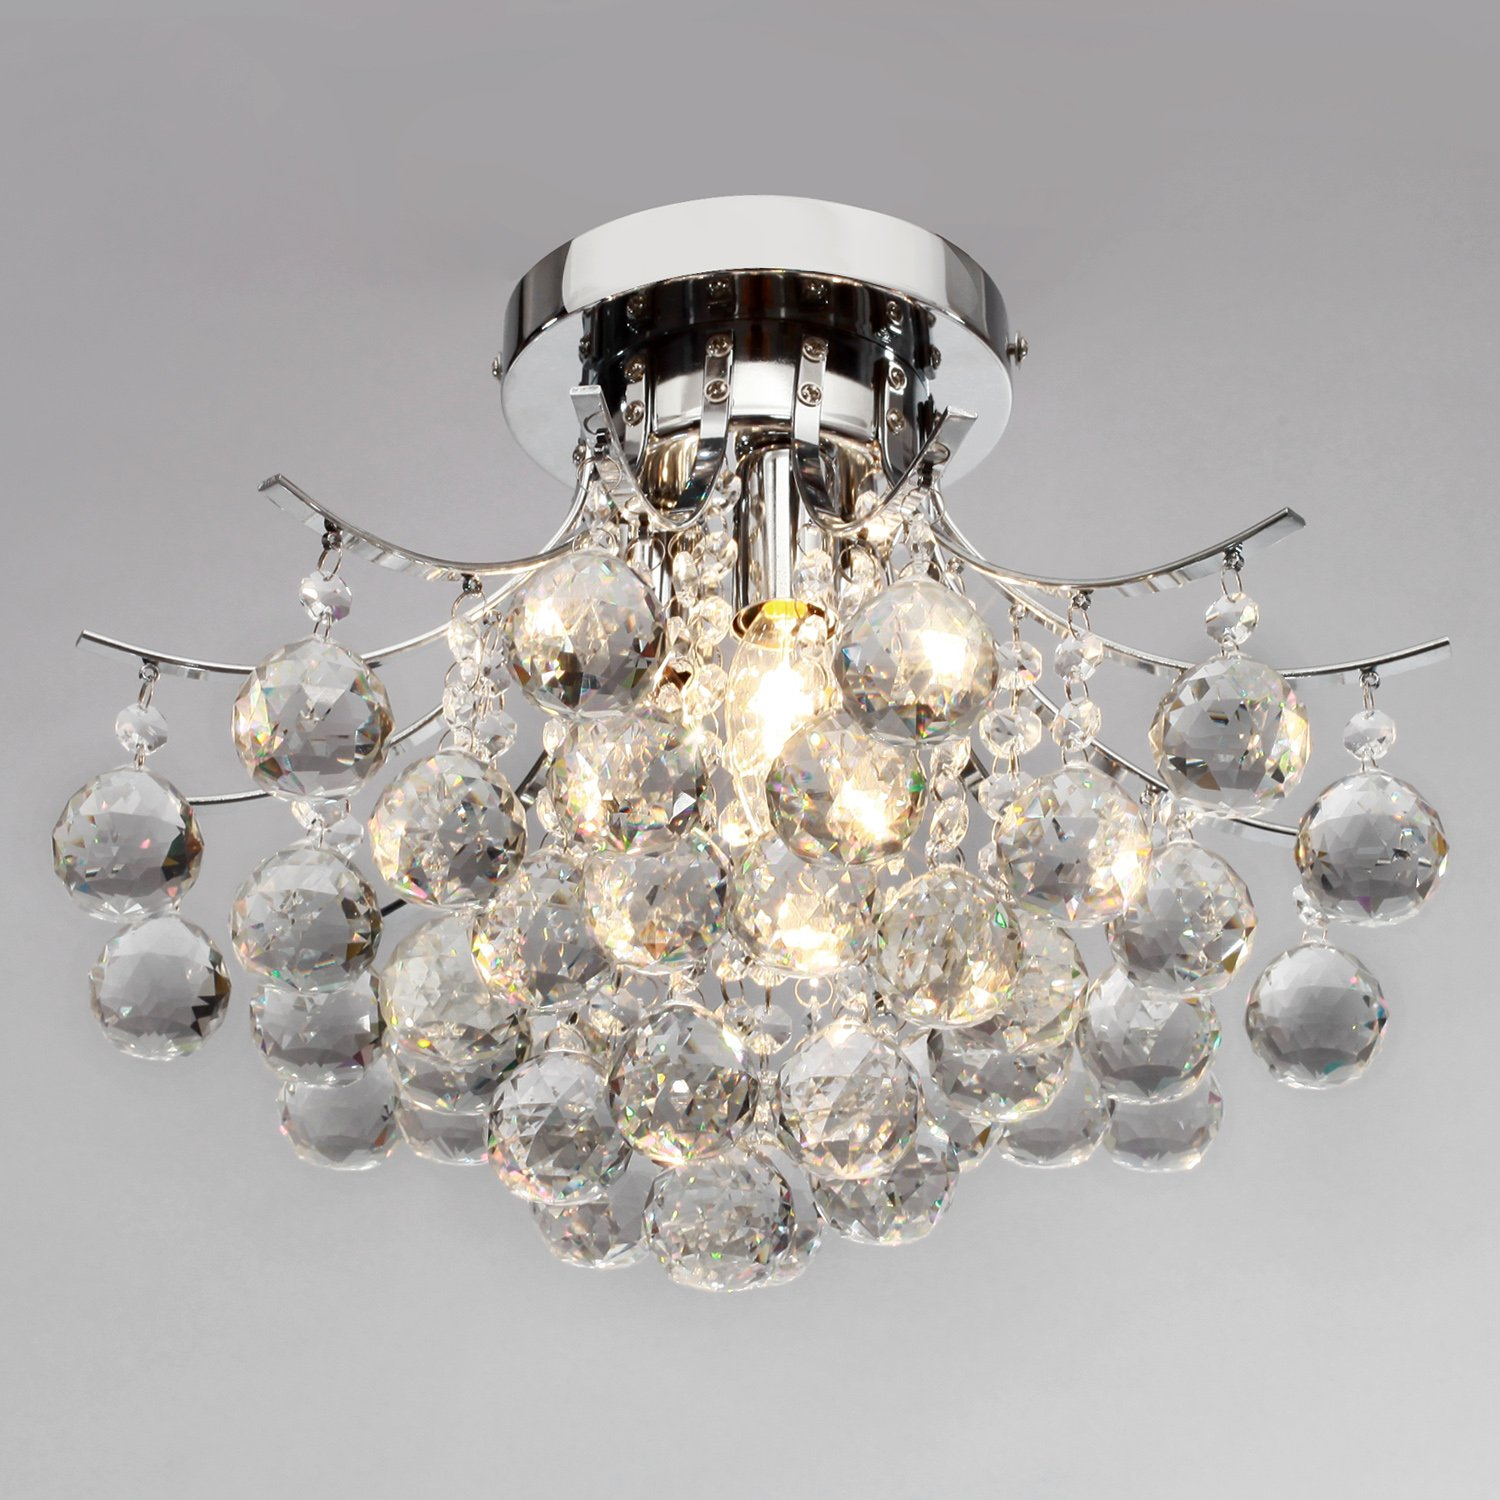 bulb celestial light stars relamp stylish space with led printed chandelier in patterned products hand lighting dining room